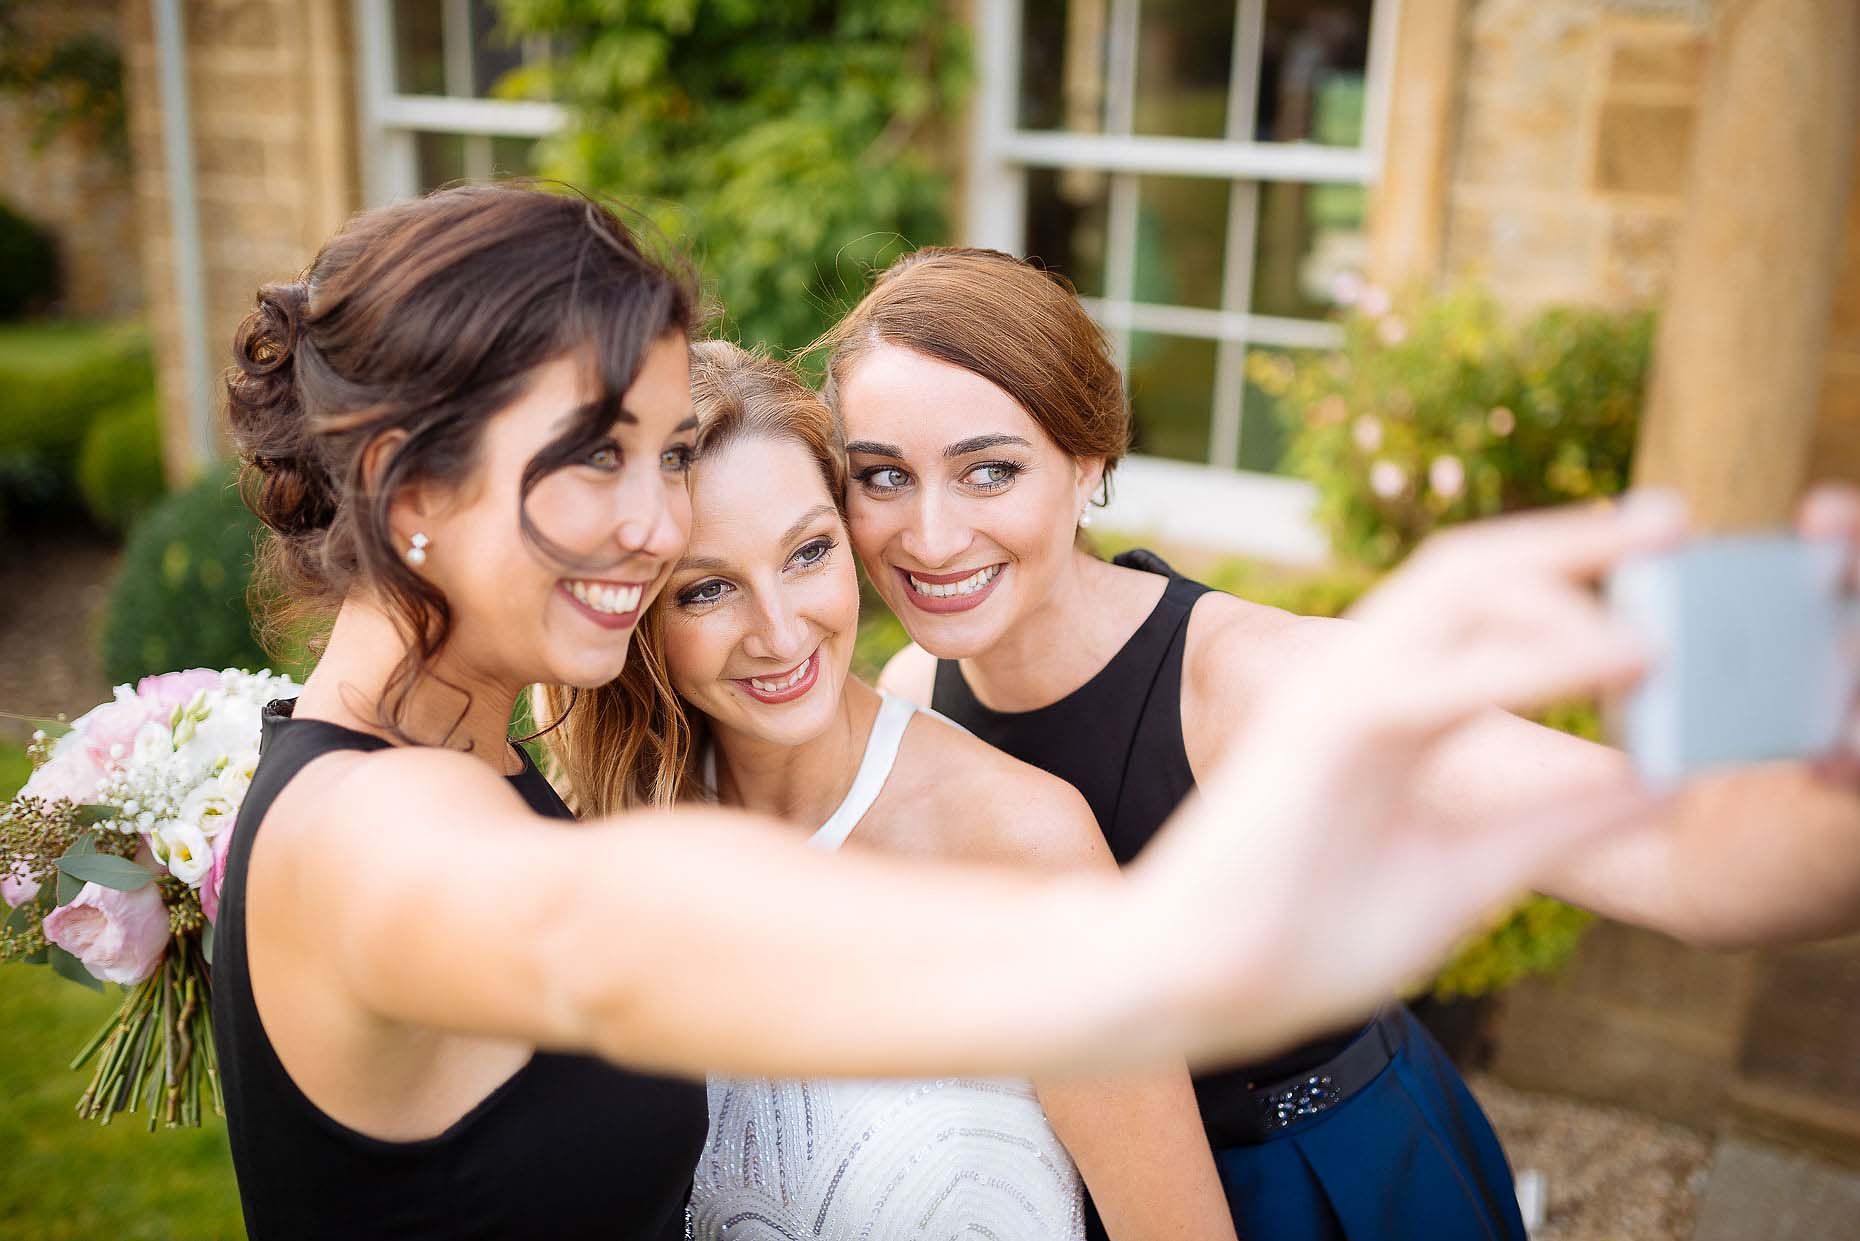 bride-with-bridesmaids-selfie-documentary-photographer-dorset-19